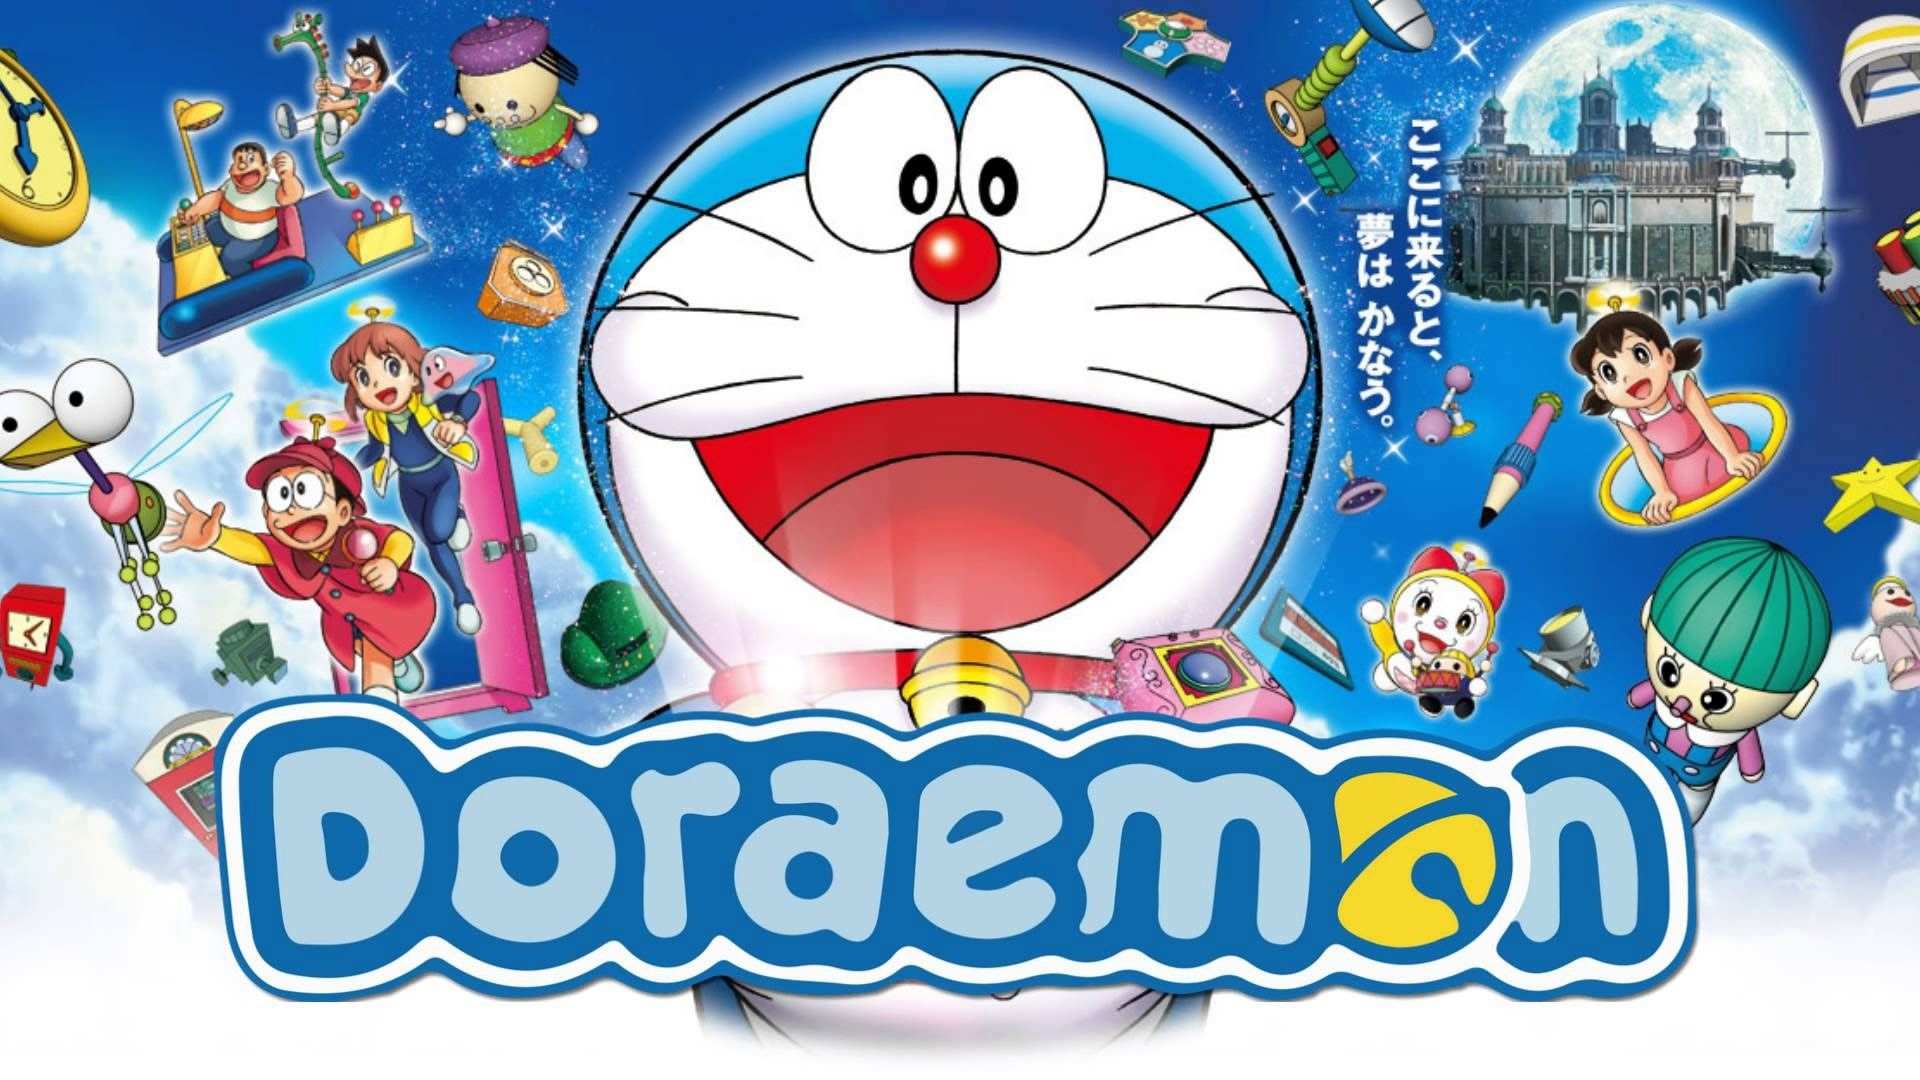 Doraemon Wallpapers Backgrounds 4kwallpaper throughout